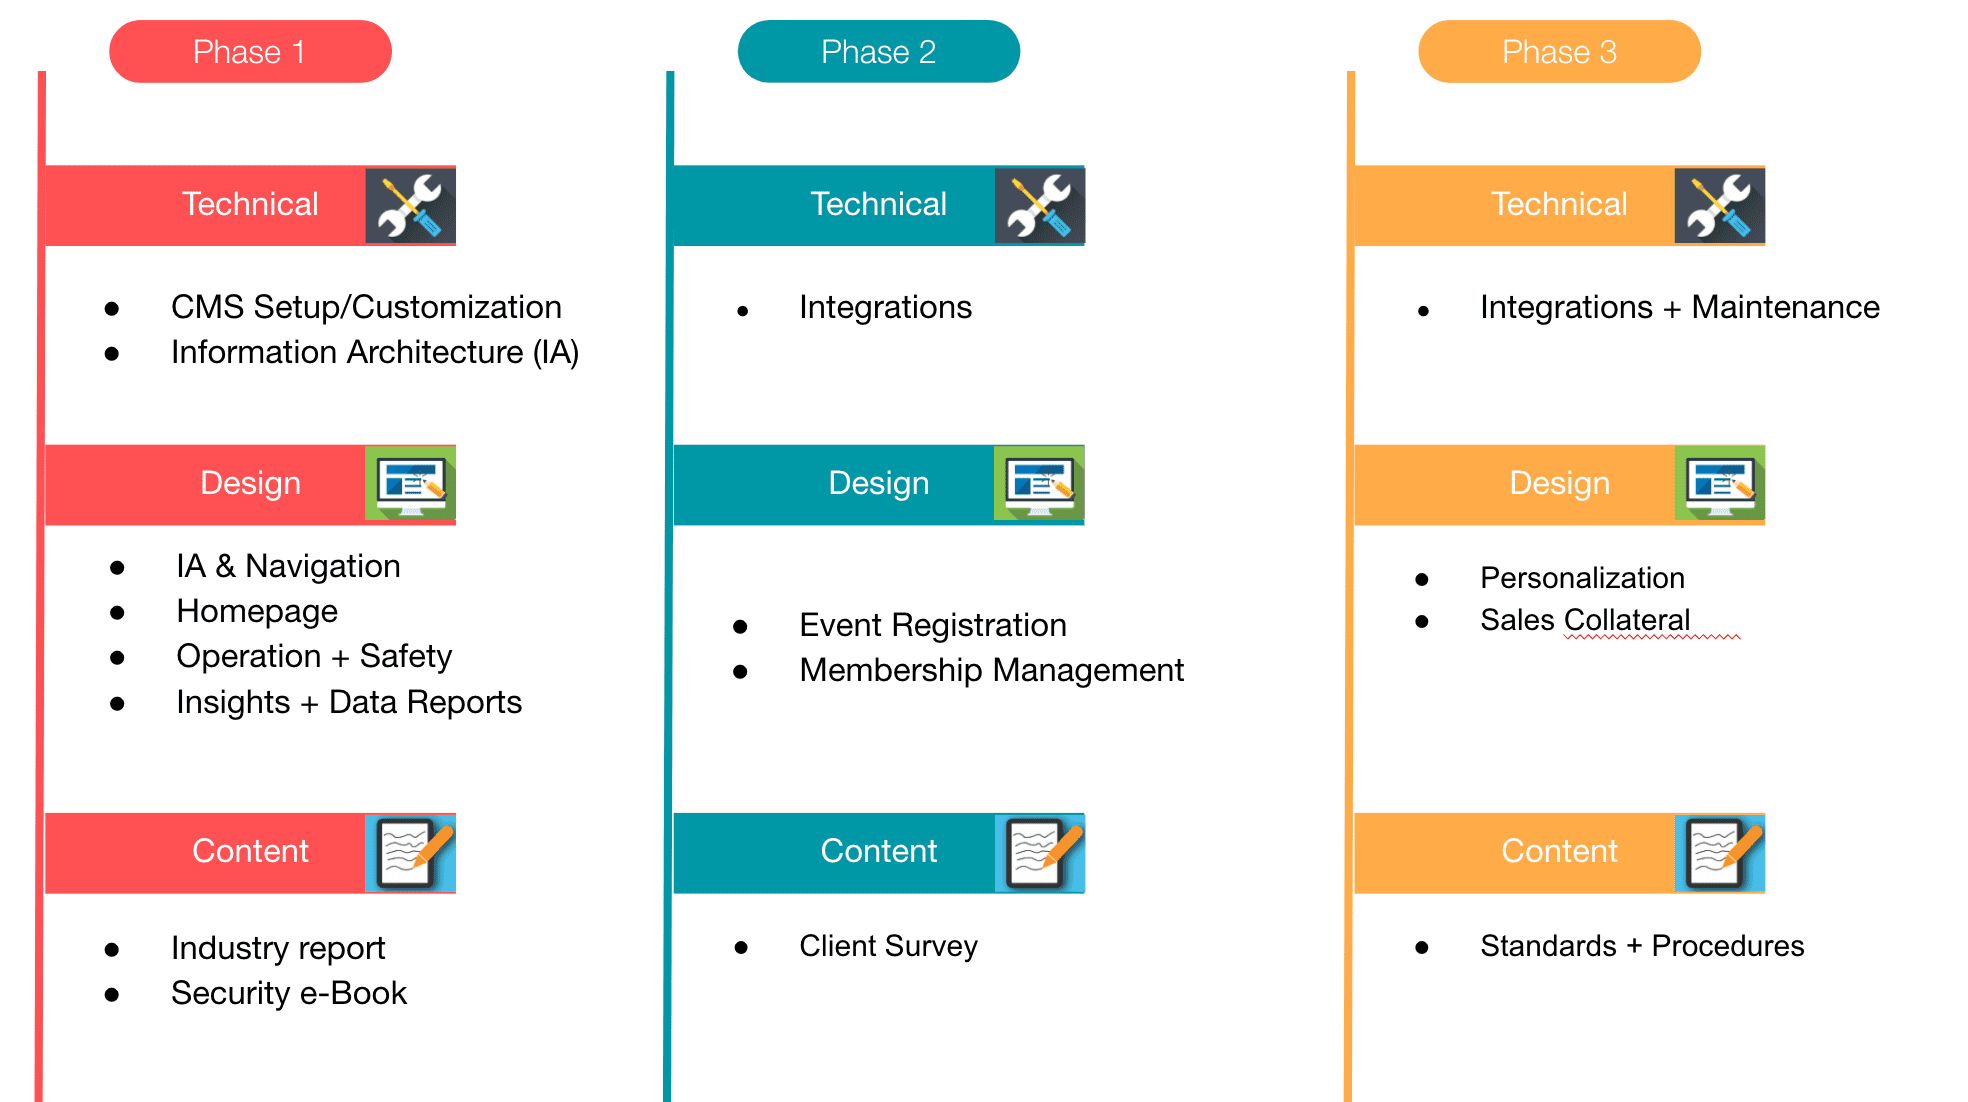 A simple product roadmap without specific due dates.